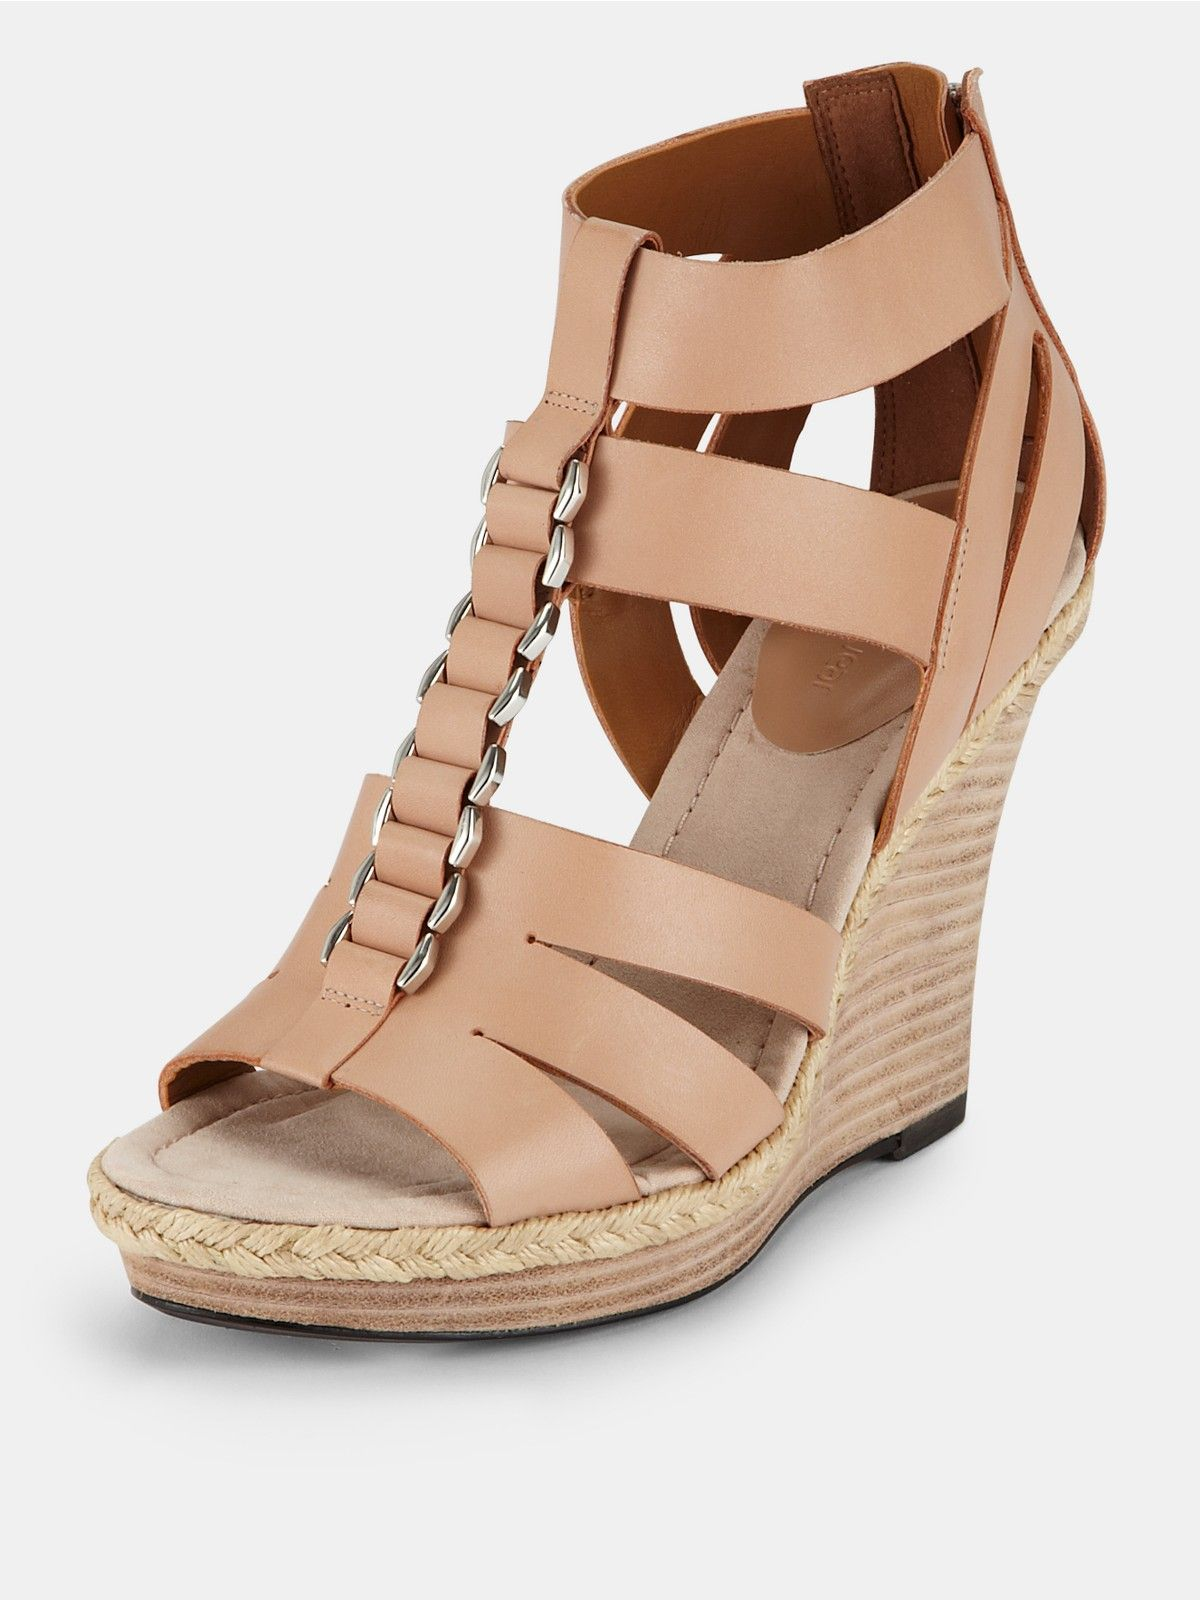 Clarks Silky Smooth Wedge Sandals